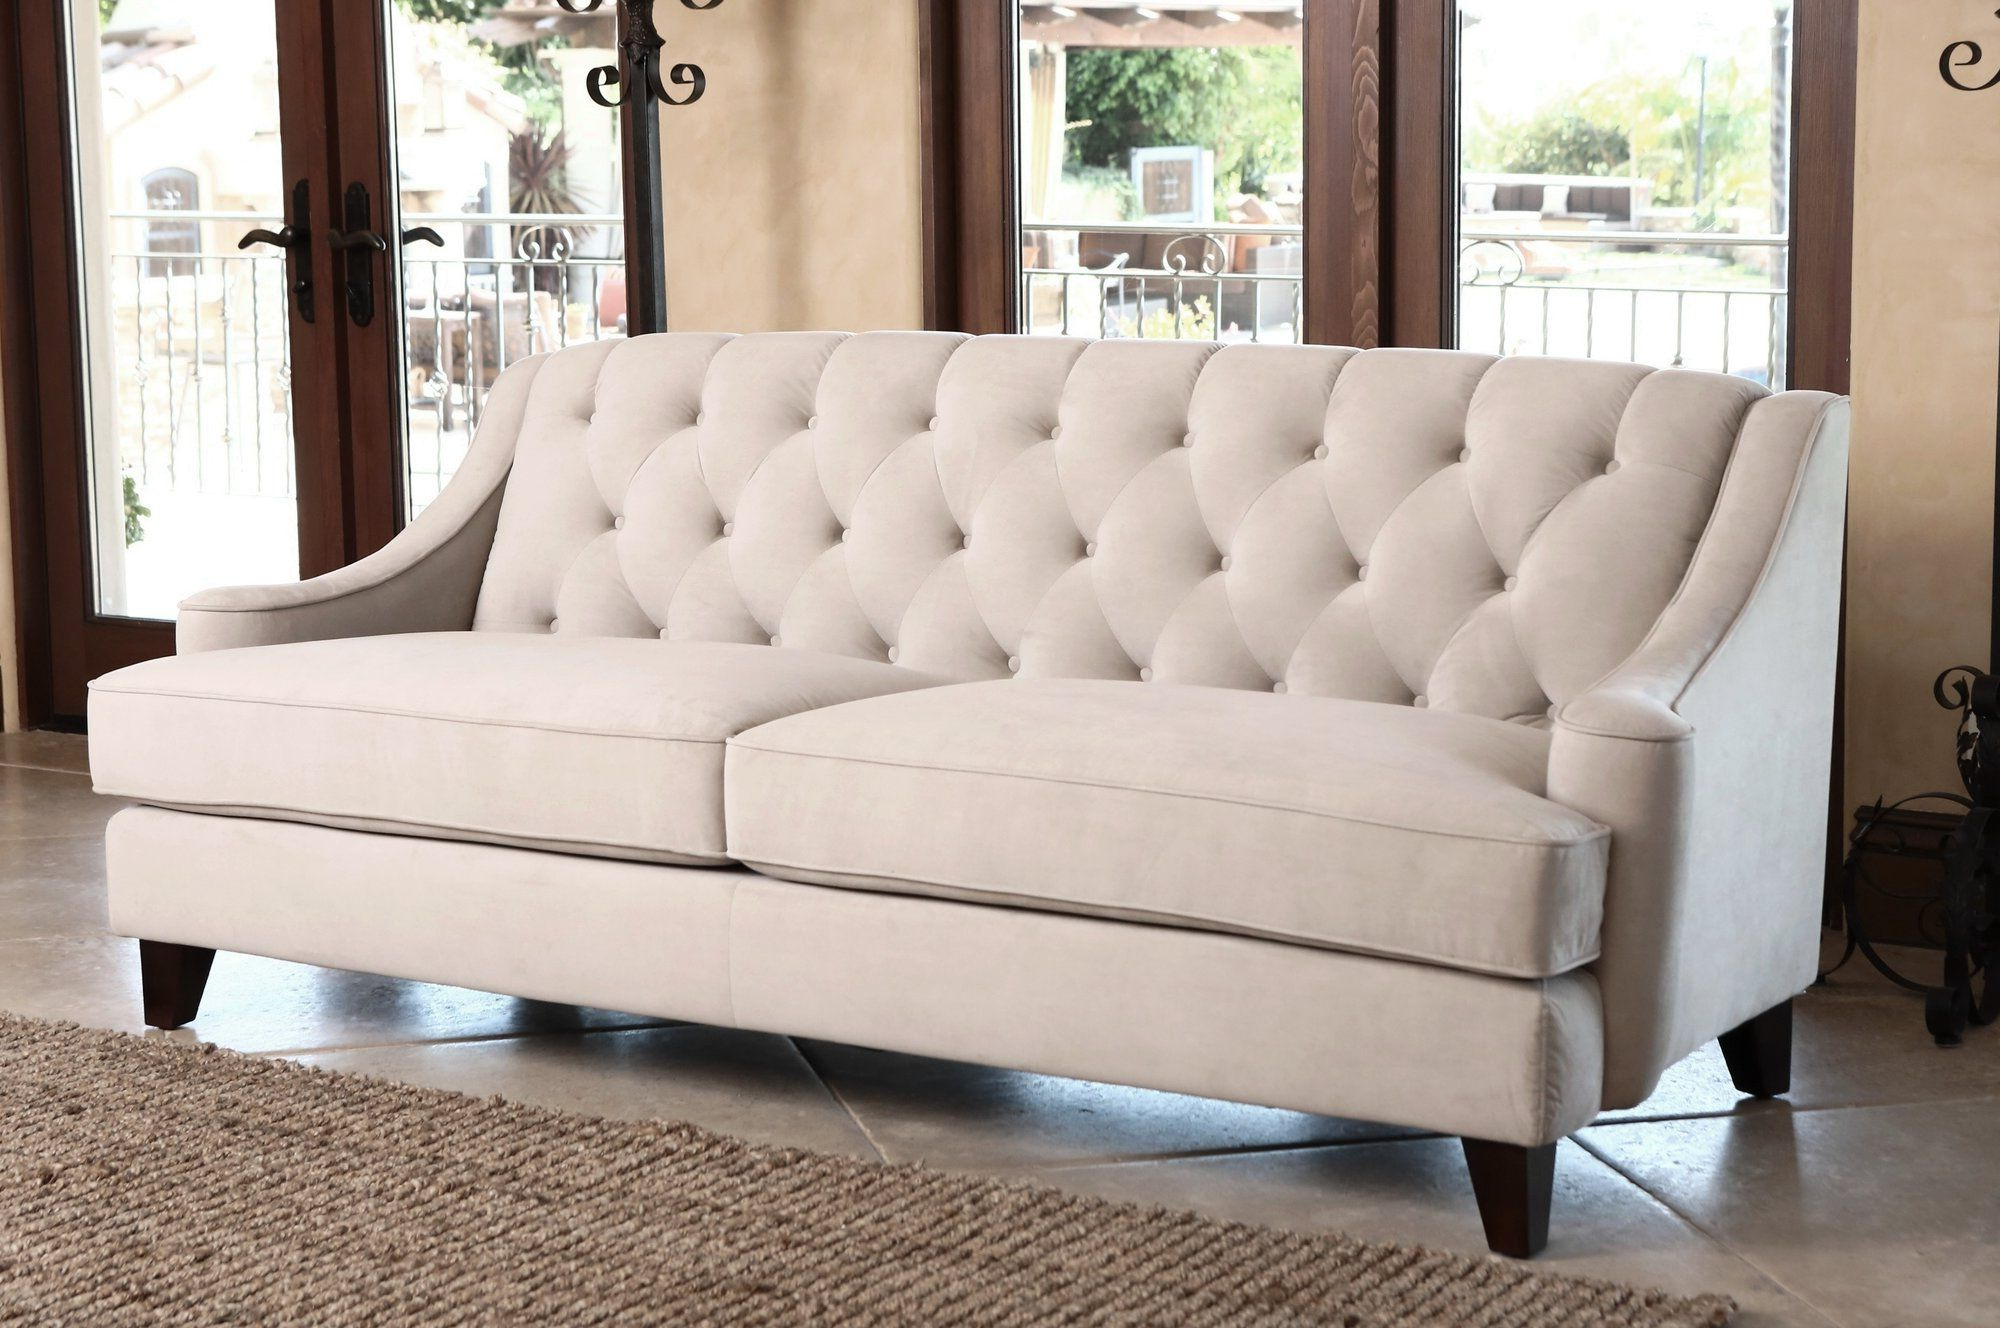 Abbyson Living, Tufted Sofa, Best Sofa (View 4 of 20)